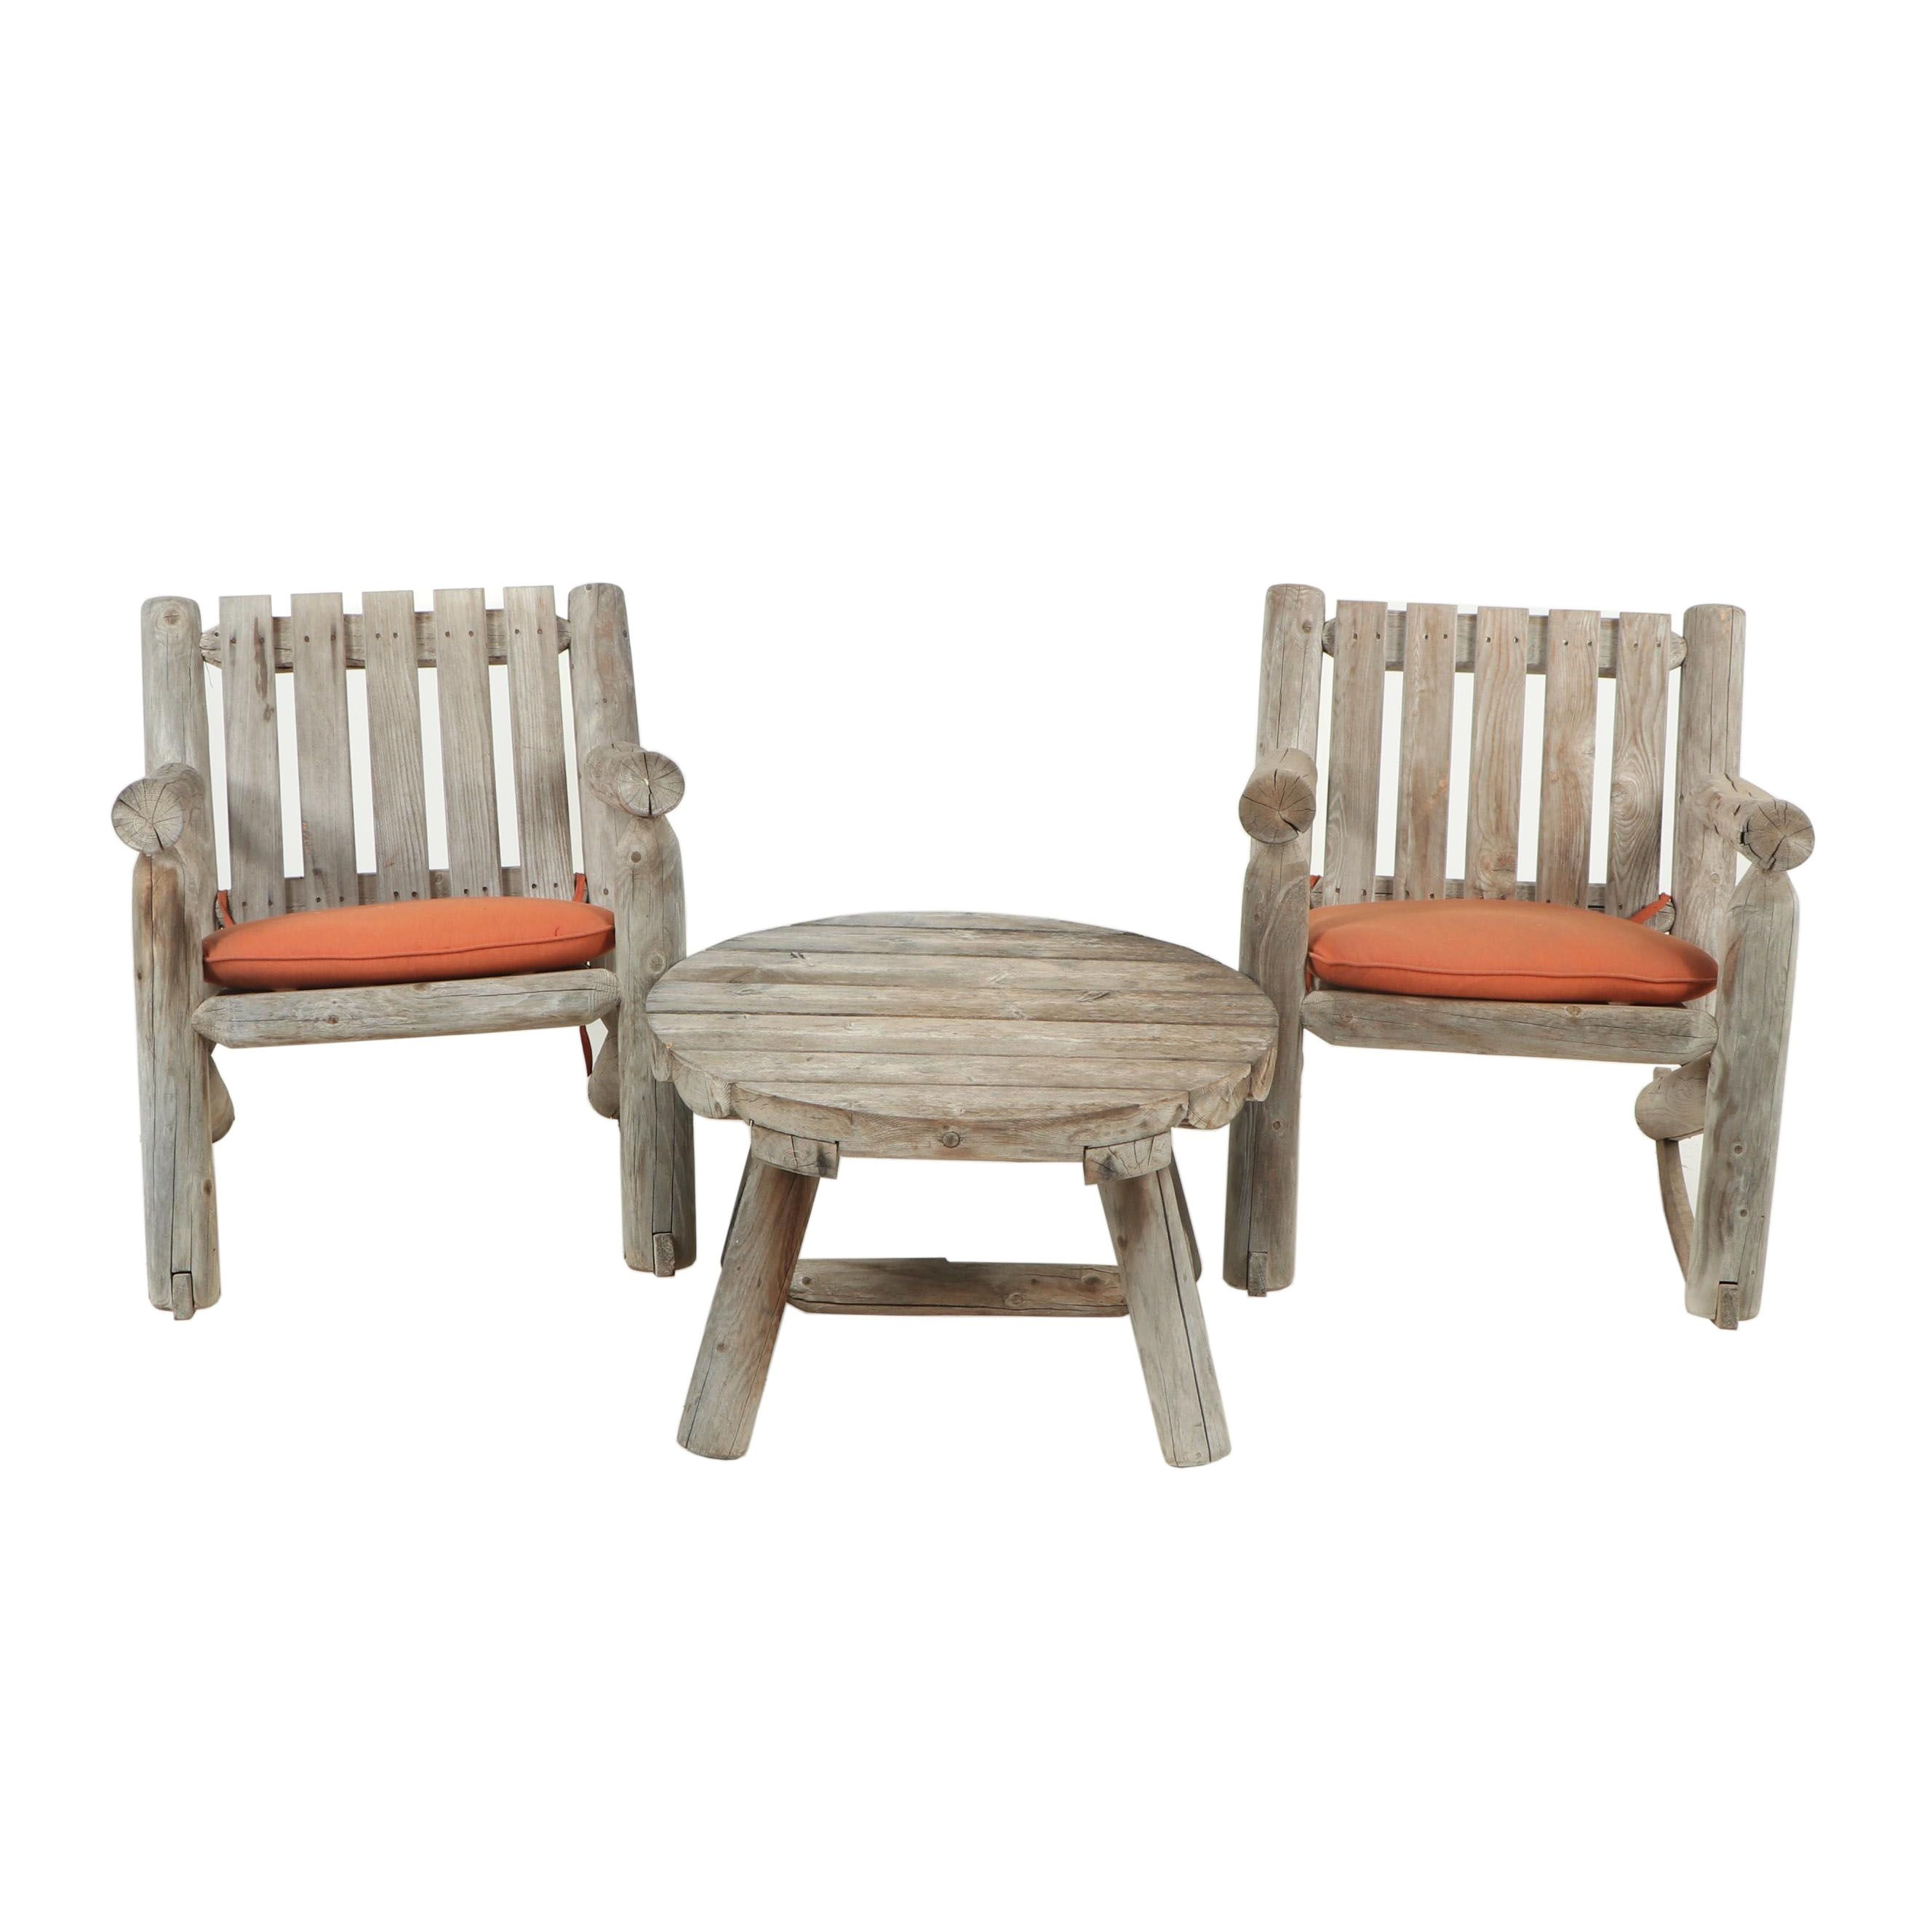 Two Outdoor Rocking Chairs and Round Table